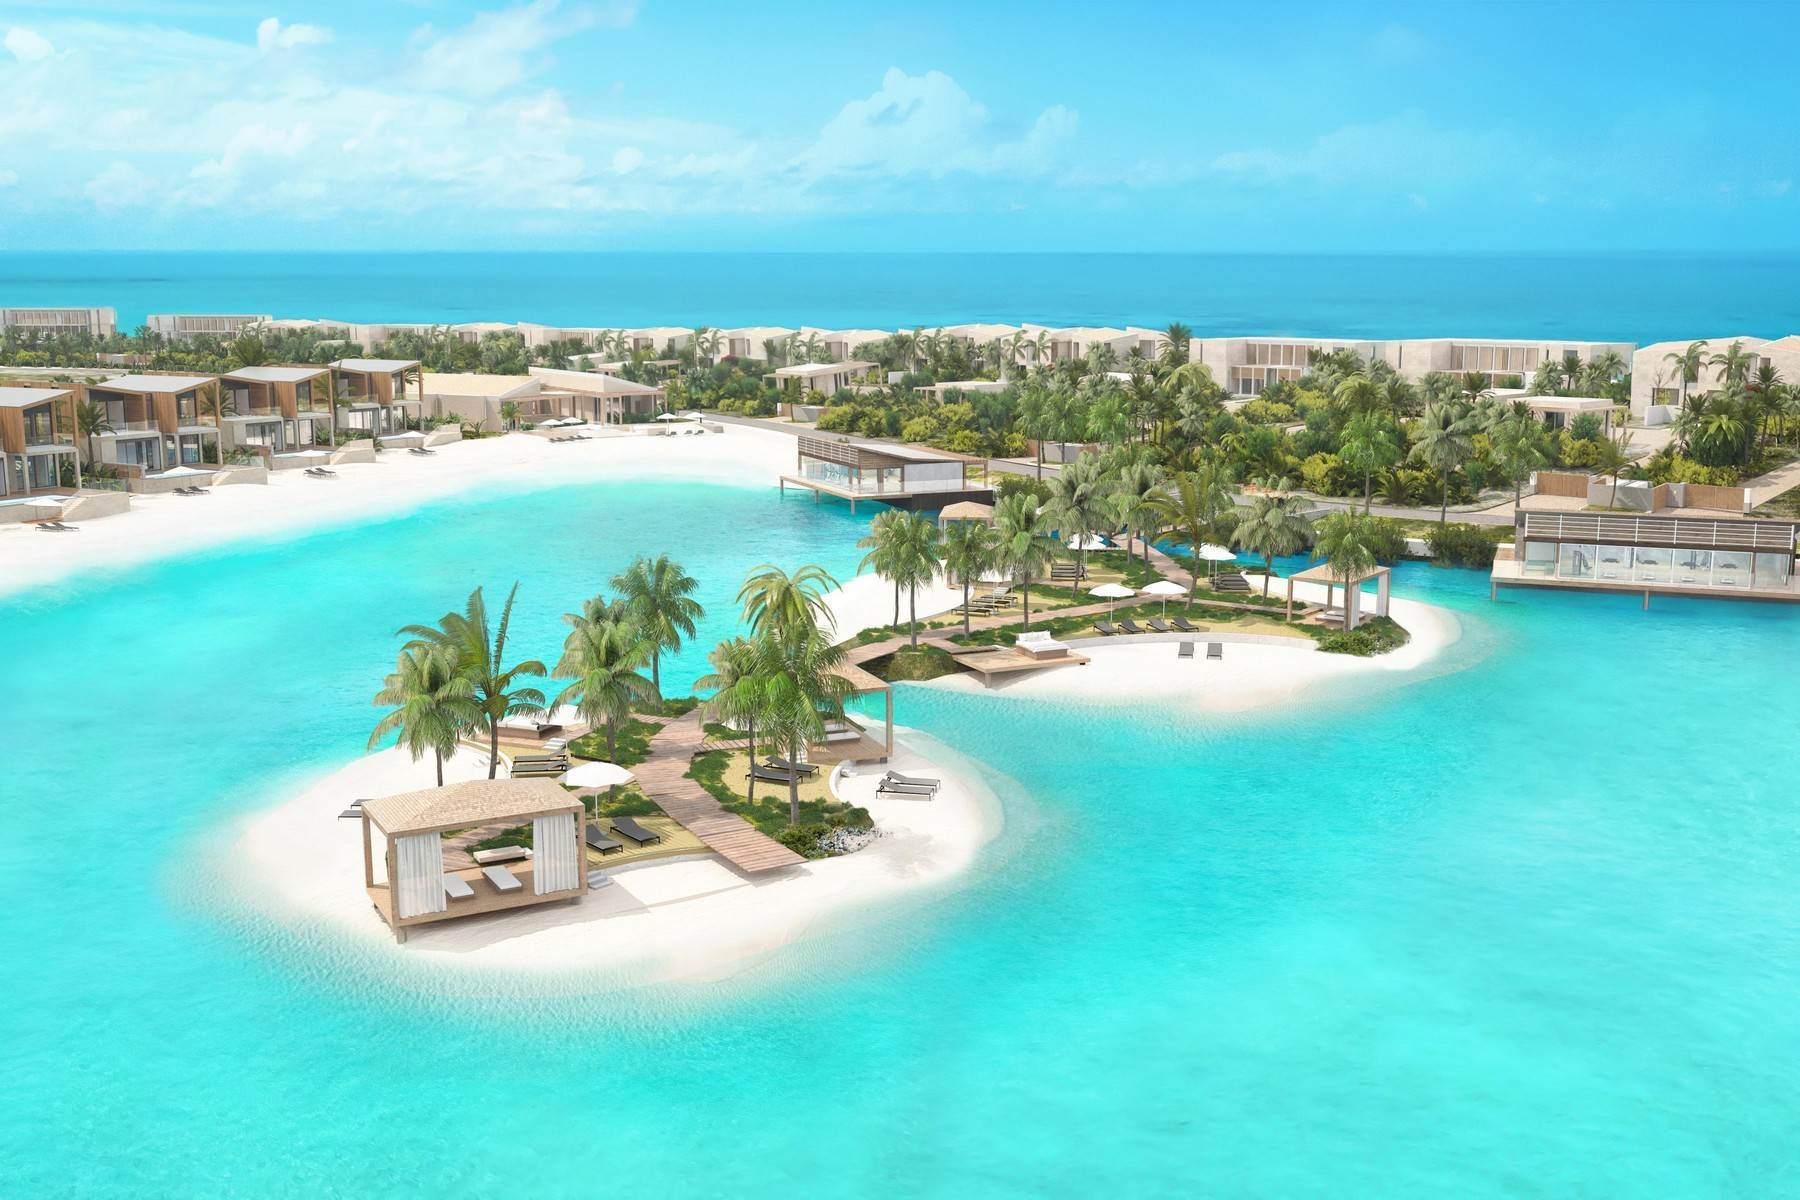 10. Condominiums for Sale at SOUTH BANK - BOATHOUSES - TWO BEDROOM PLUS ROOFTOP TERRACE - E1 South Bank, Long Bay, Providenciales Turks And Caicos Islands